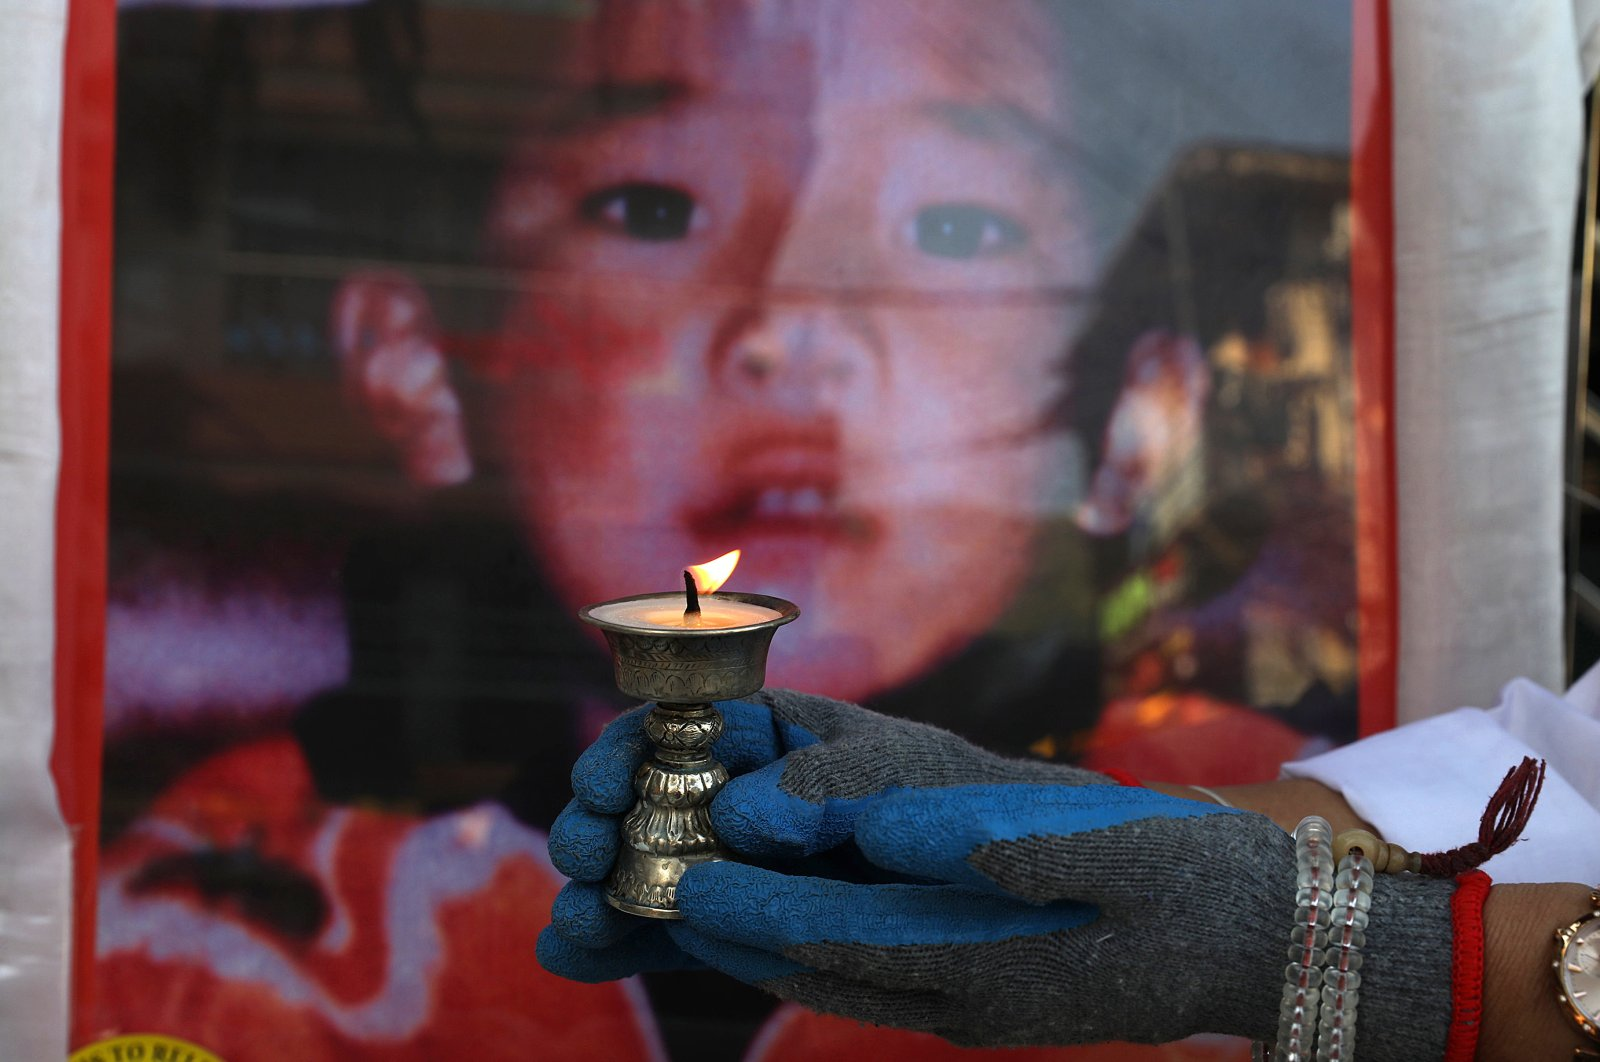 A Tibetan woman living in exile and a member of the Tibetan Women's Association lights a butter lamp during an event to mark the 31st birthday of Panchen Lama in McLeod Ganj, near Dharamsala, India, April 25, 2020.(EPA Photo)